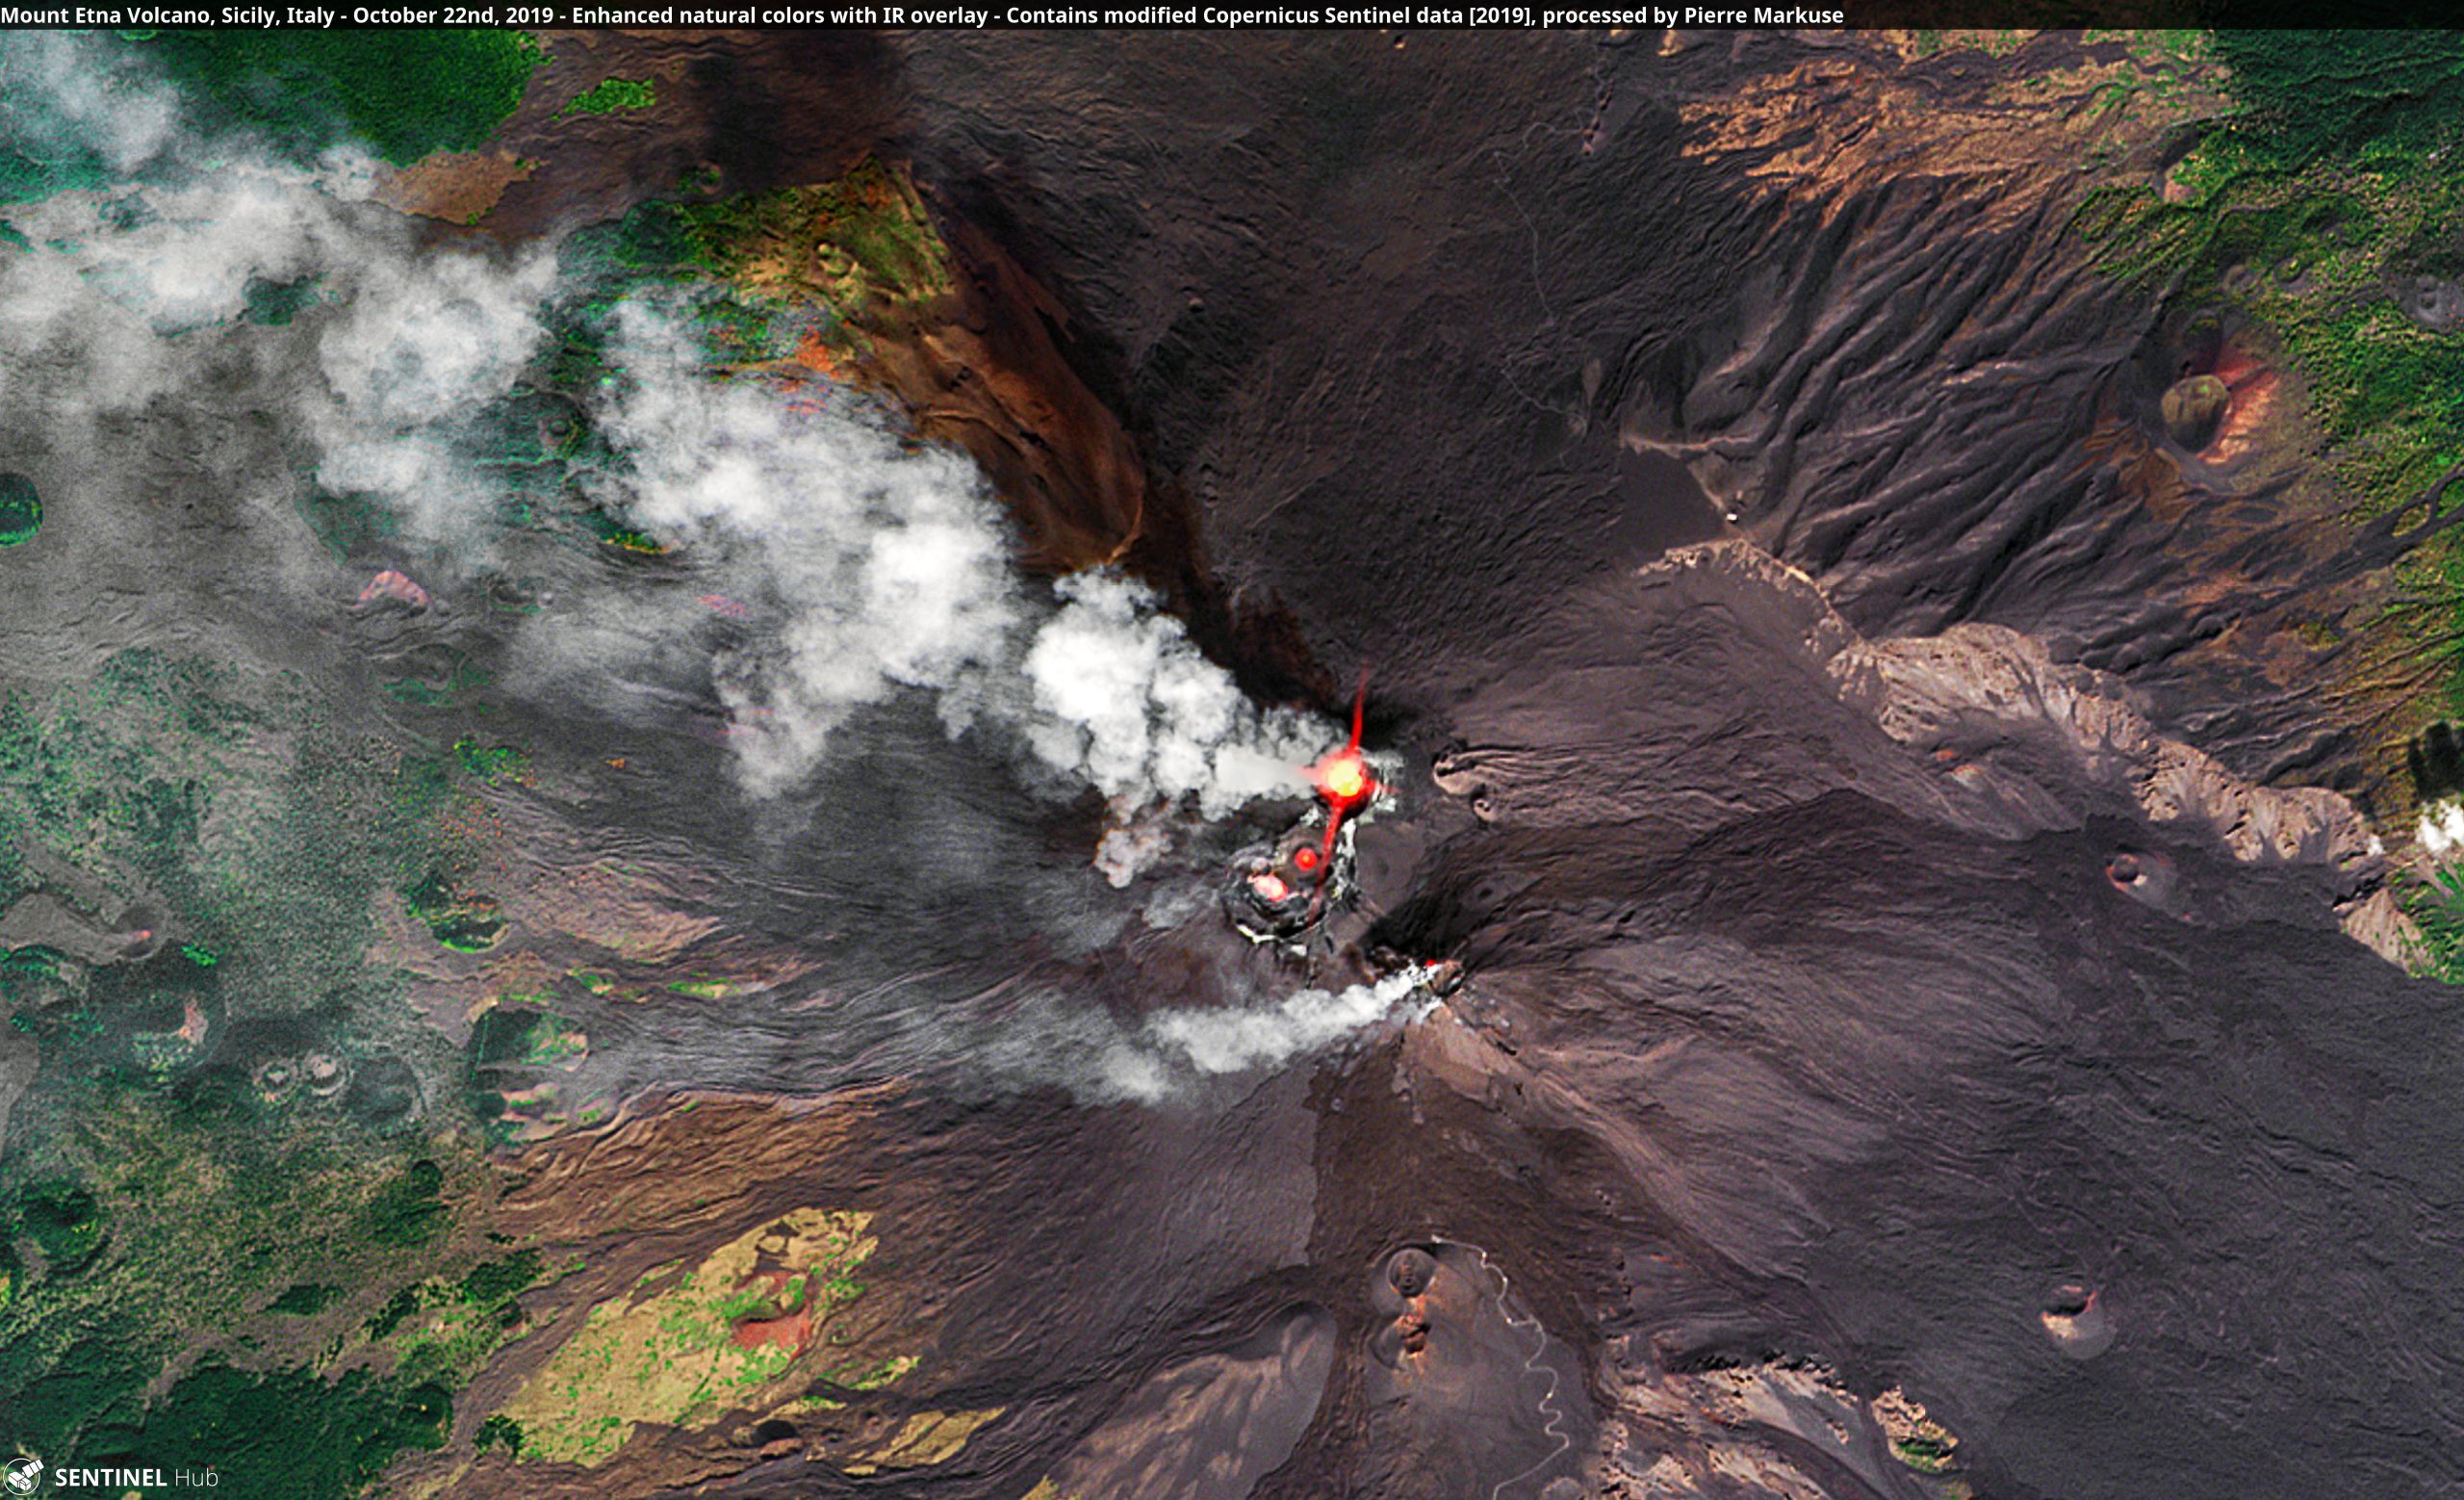 Mount Etna Volcano, Sicily, Italy - October 22nd, 2019 Copernicus/Pierre Markuse